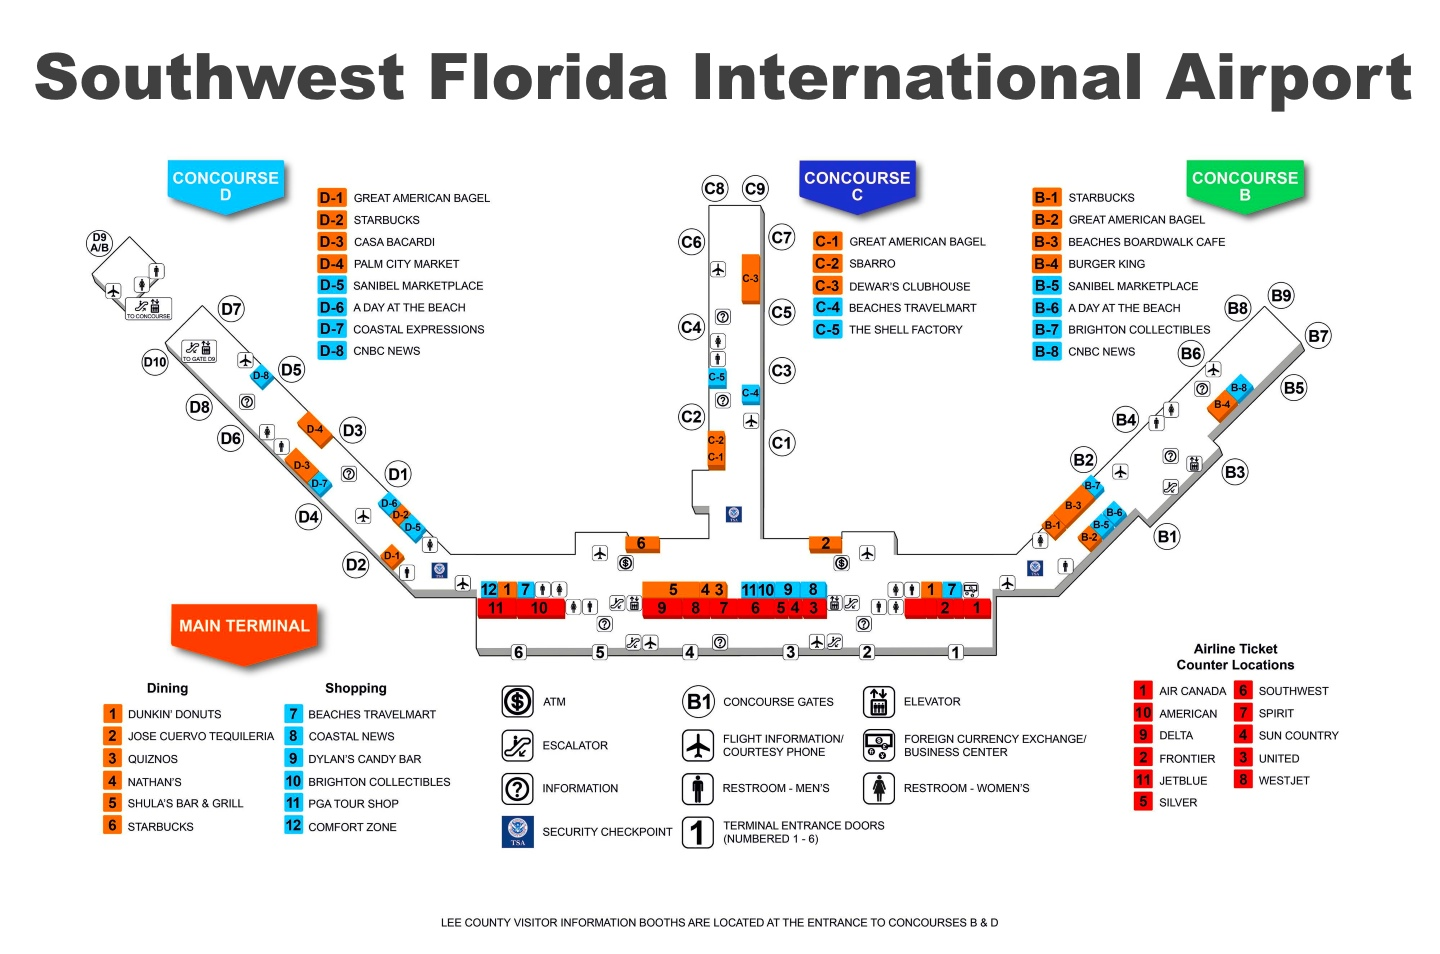 Rsw Airport Map Southwest Florida International Airport map Rsw Airport Map